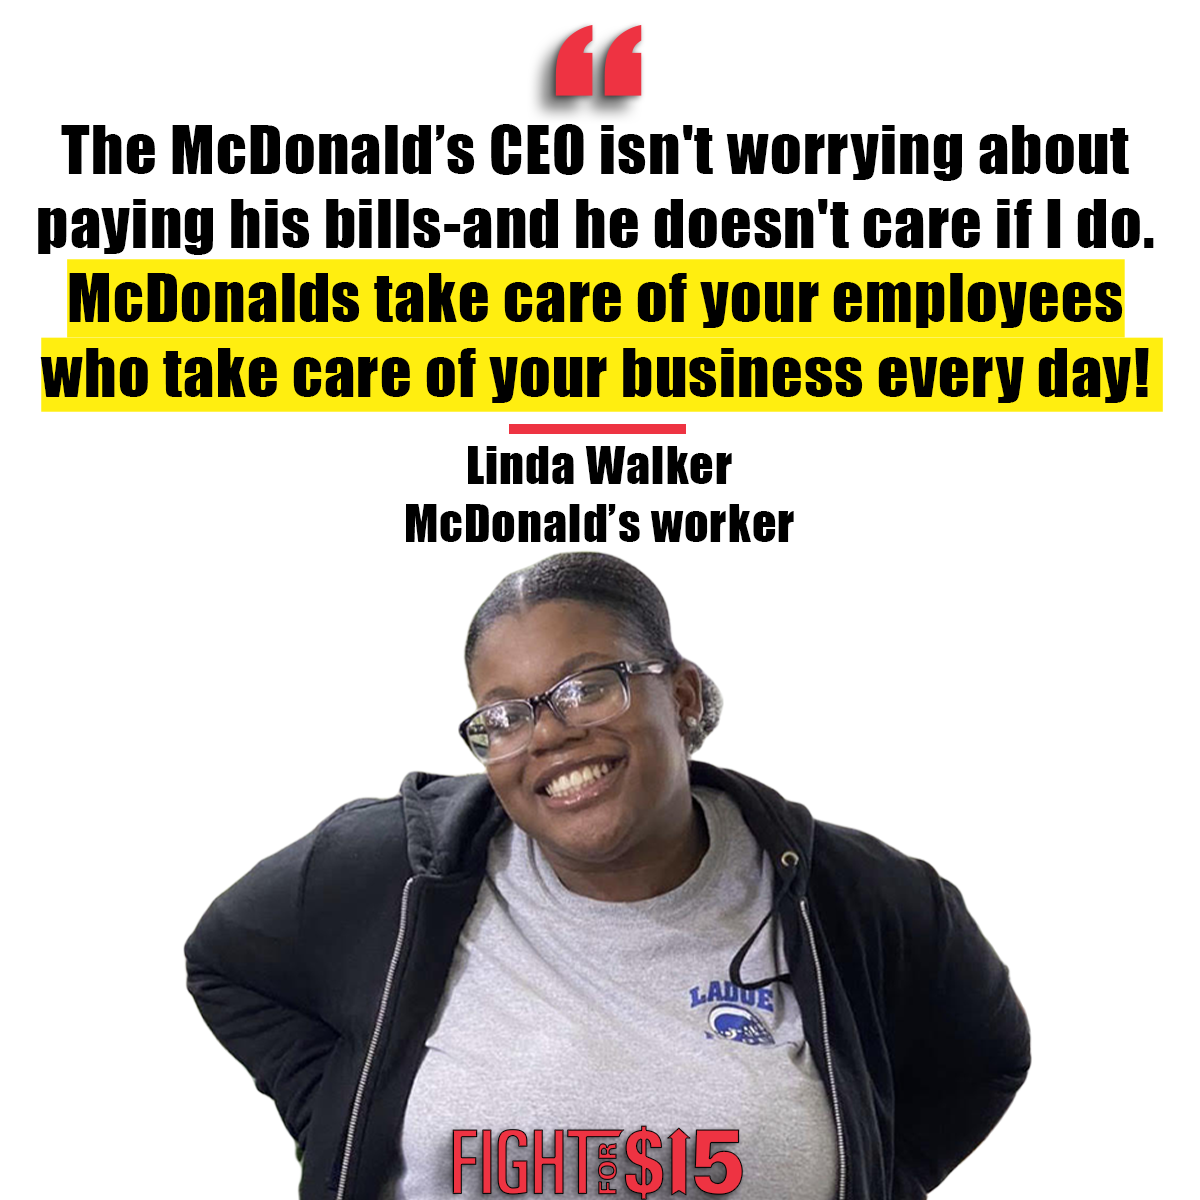 McDonald's take care of your employees who take care of your business every day